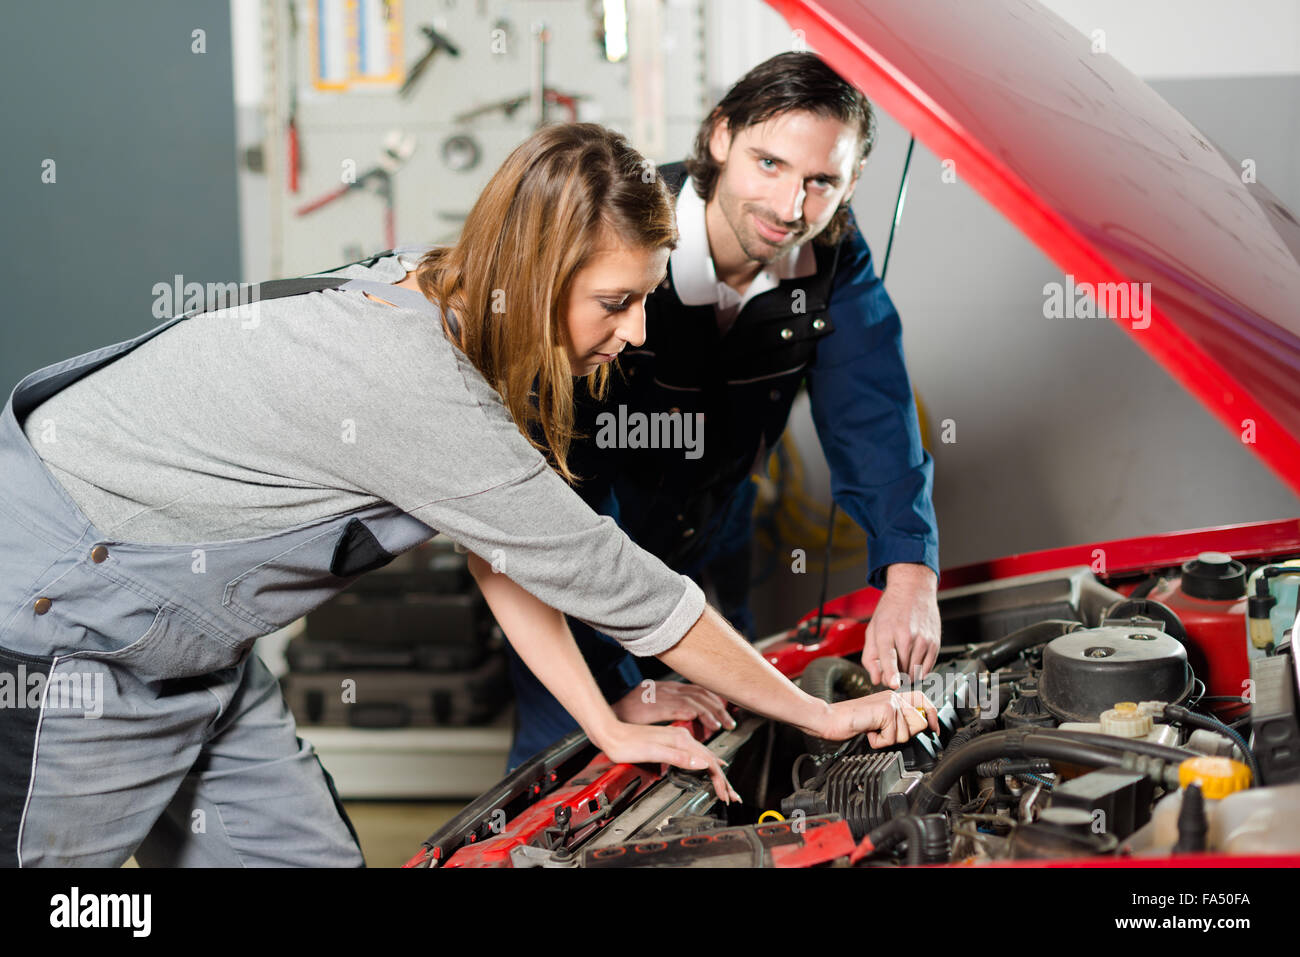 Auto mechanic guiding a female trainee in garage - Stock Image